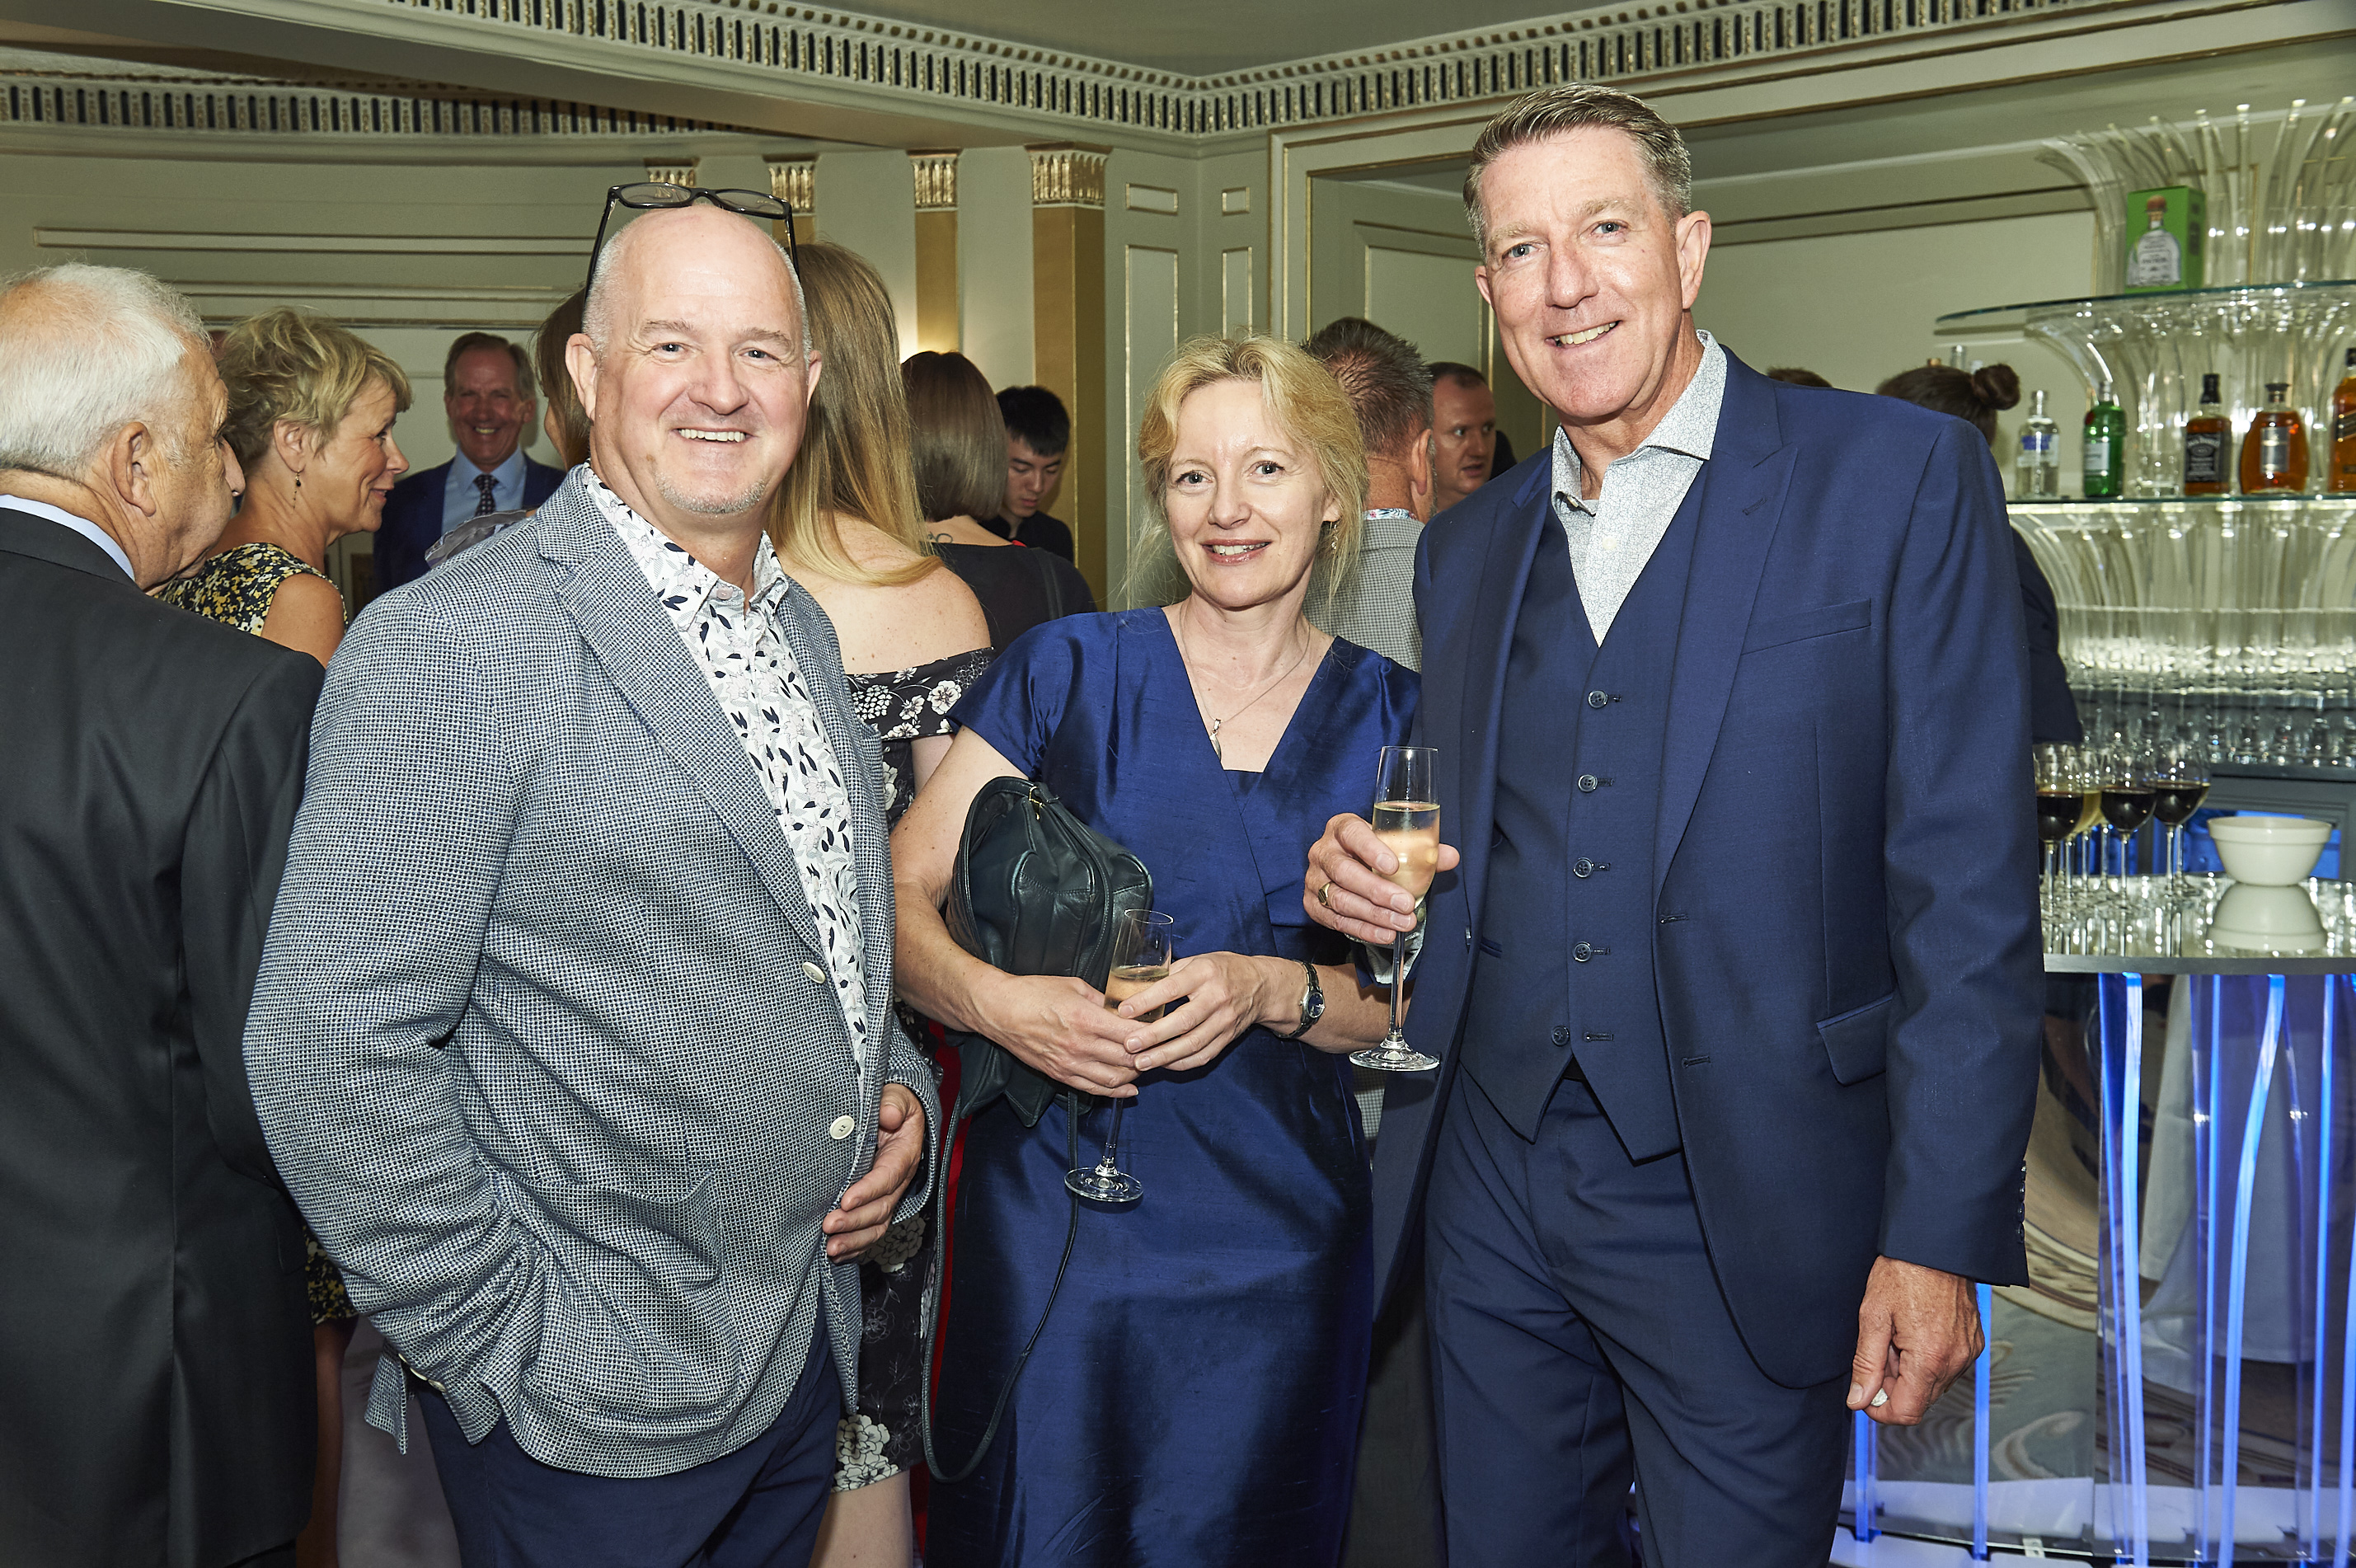 Above: Chris Houfe (left) with WHSmith's Claire Castle and Martin Nevin (formerly of Is It Art and Emotional Rescue) at a Retas event when Chris and Martin were working together at Emo.